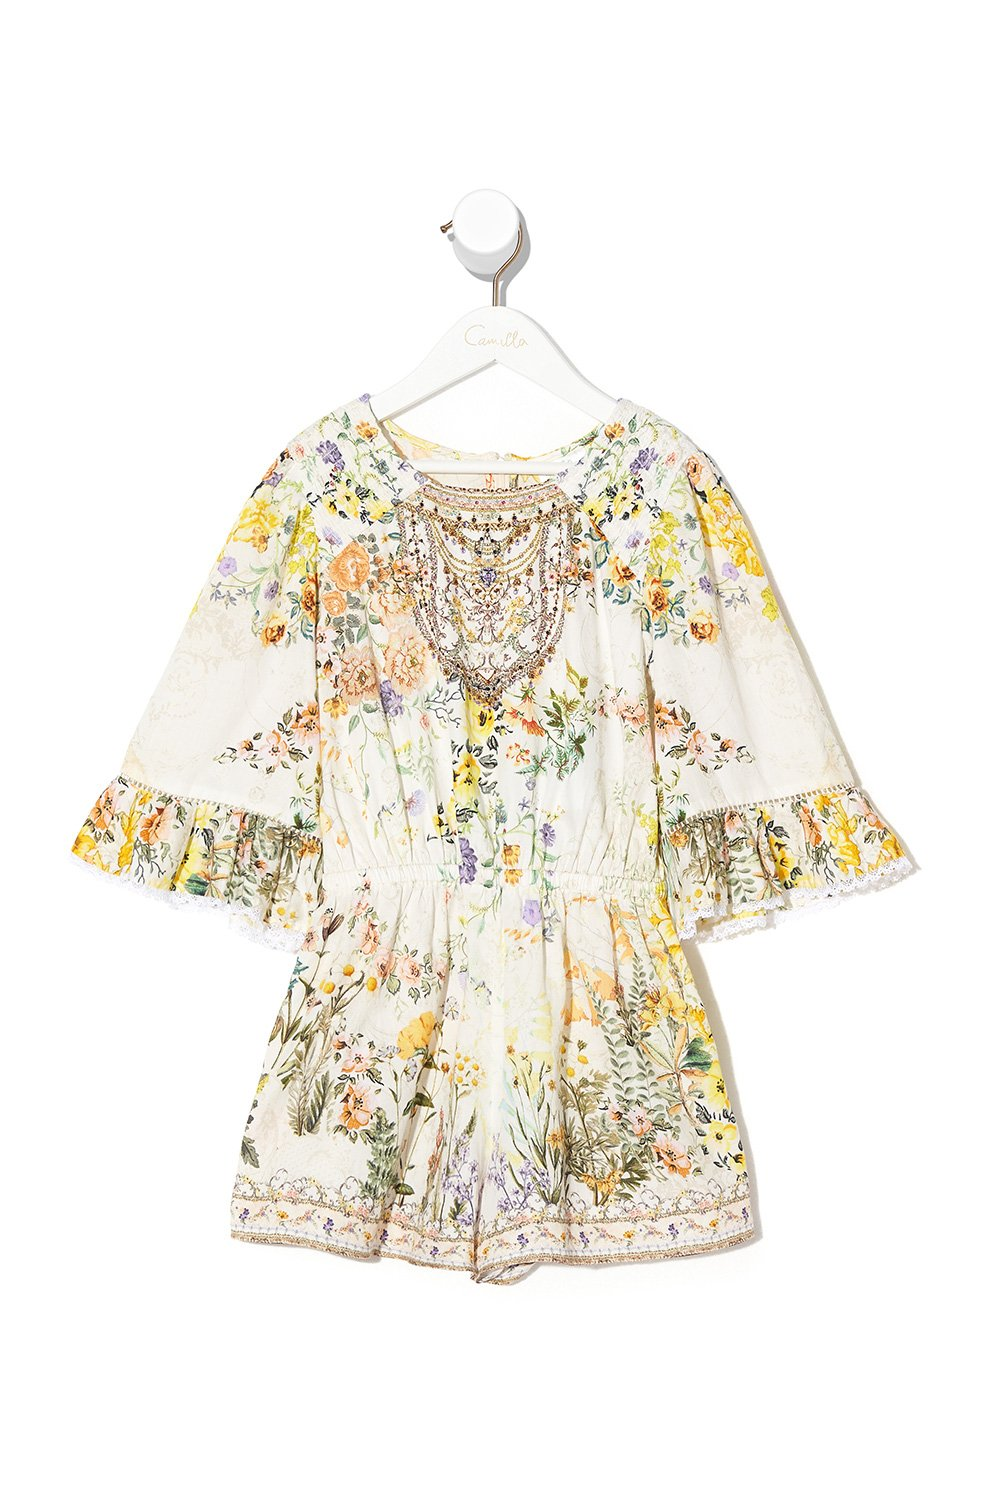 KIDS PLAYSUIT WITH TRIM IN THE HILLS OF TUSCANY